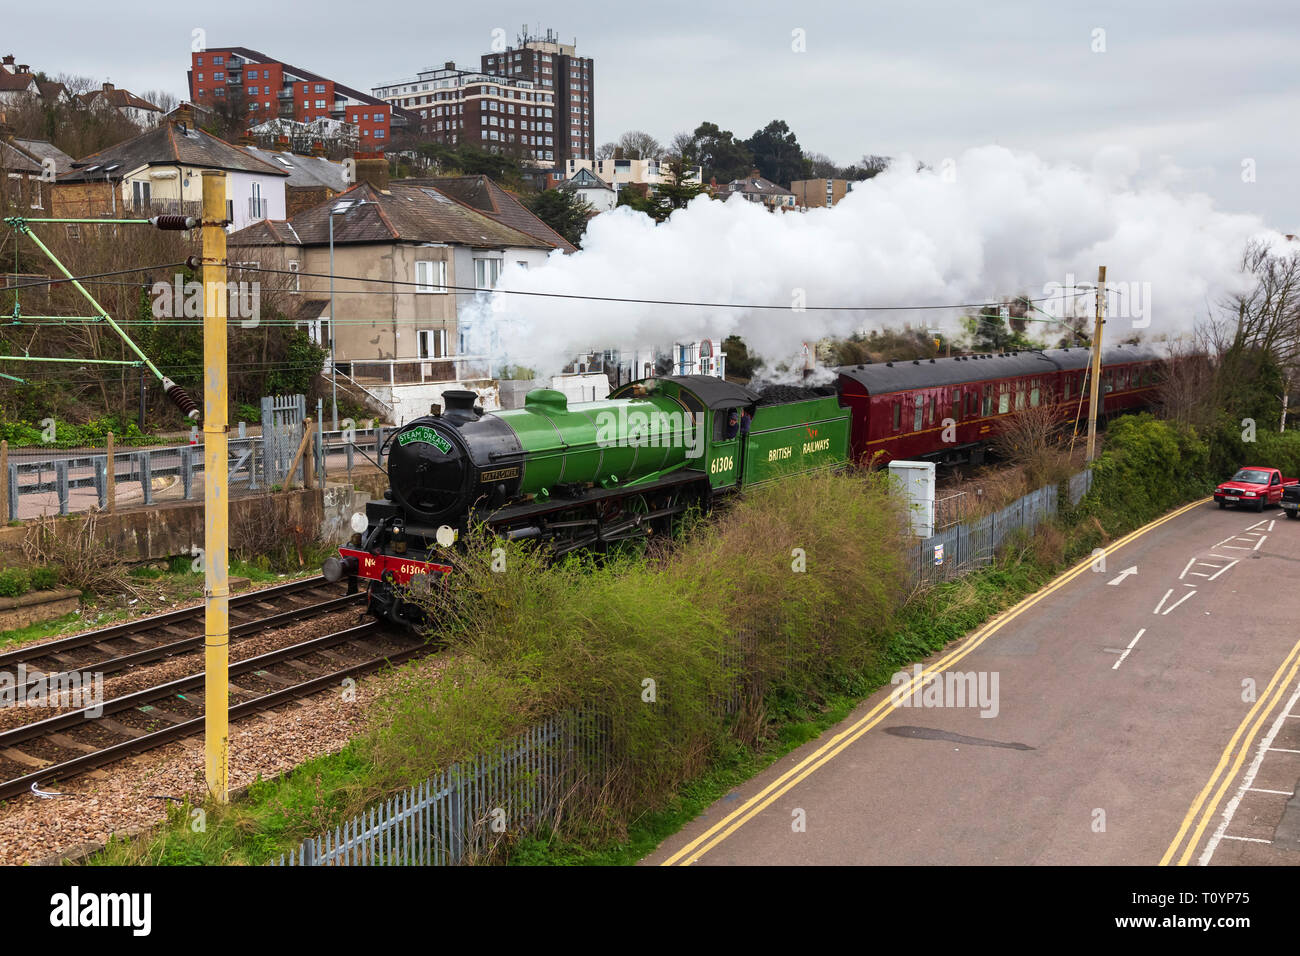 Old Leigh, Essex, UK. 23rd Mar 2019. Reserved steam locomotive 61306 'Mayflower' hurtles through Old Leigh in Essex early this morning en-route to the Bluebell railway in East Sussex. from Southend-on-Sea. 'Mayflower' is one of only 2 LNER Class B1 locomotives preserved and it only returned to mainline running last year. Credit: Timothy Smith/Alamy Live News Stock Photo